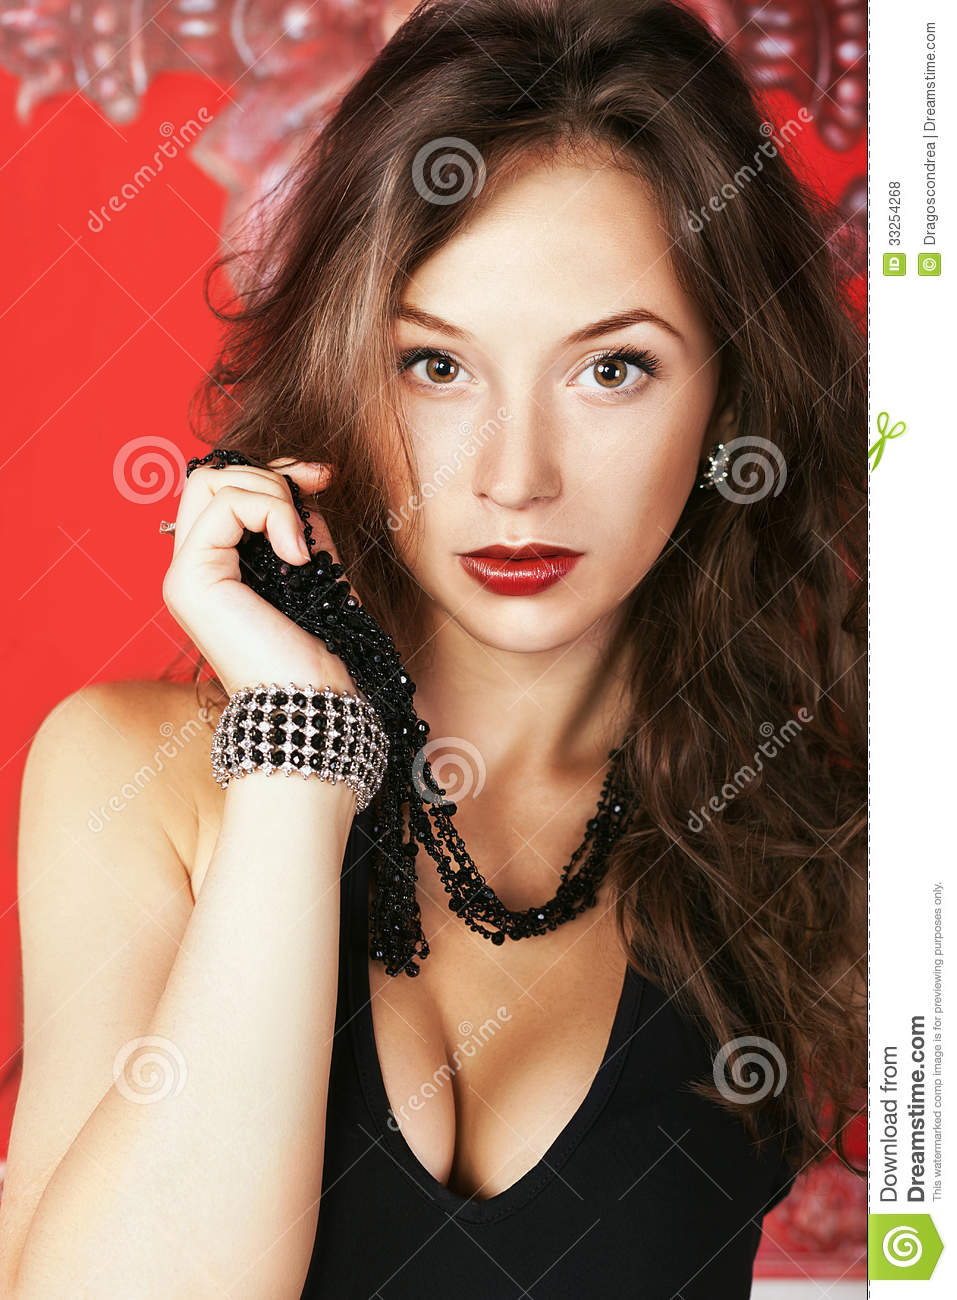 Fashion Glamour Girl With Jewellery On Red Vintage Background Royalty Free Stock Photos Image